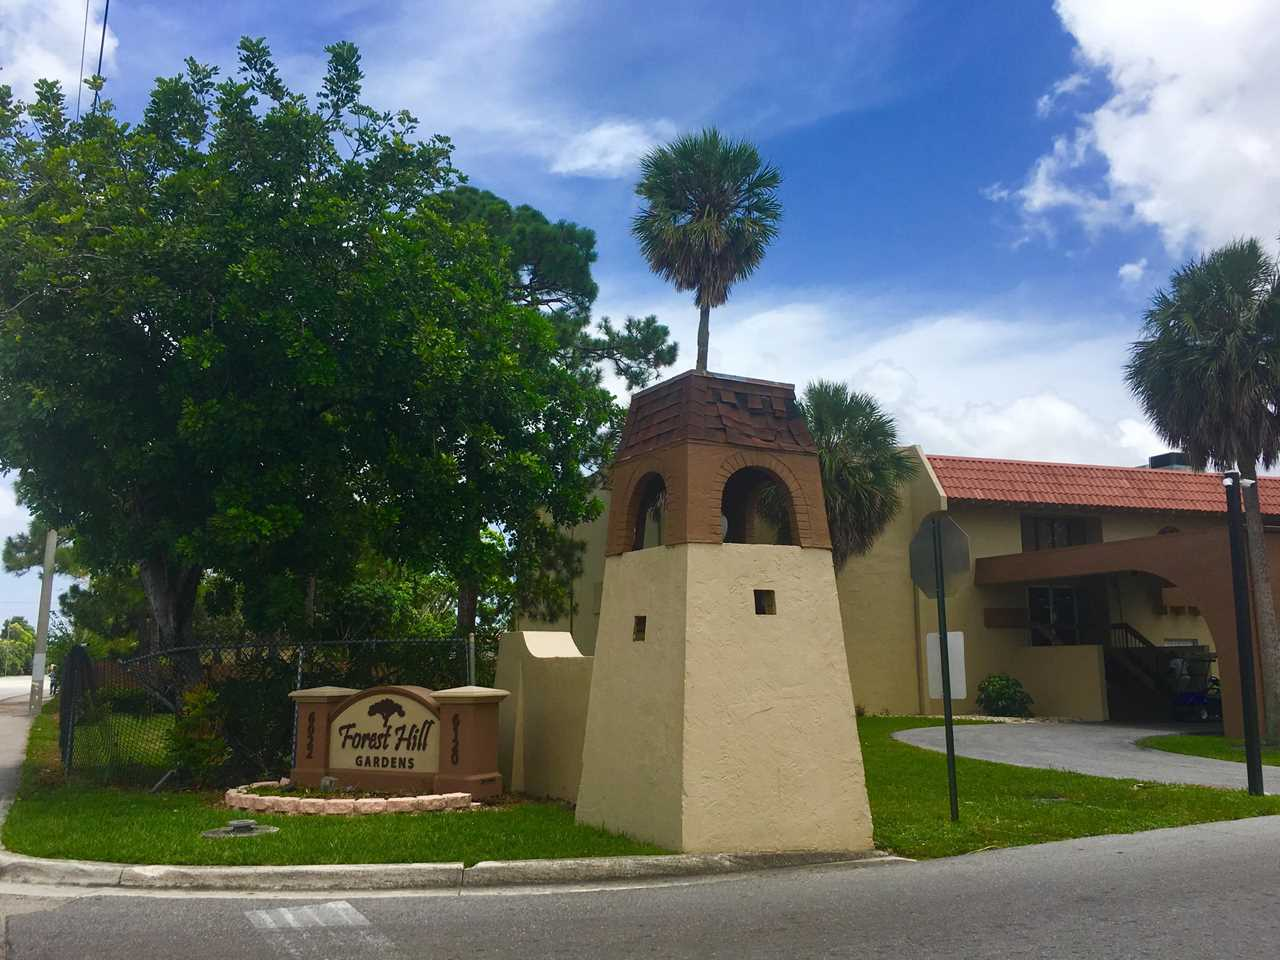 6074 Forest Hill Boulevard #110 West Palm Beach, FL 33415 | MLS RX-10494805 Photo 1